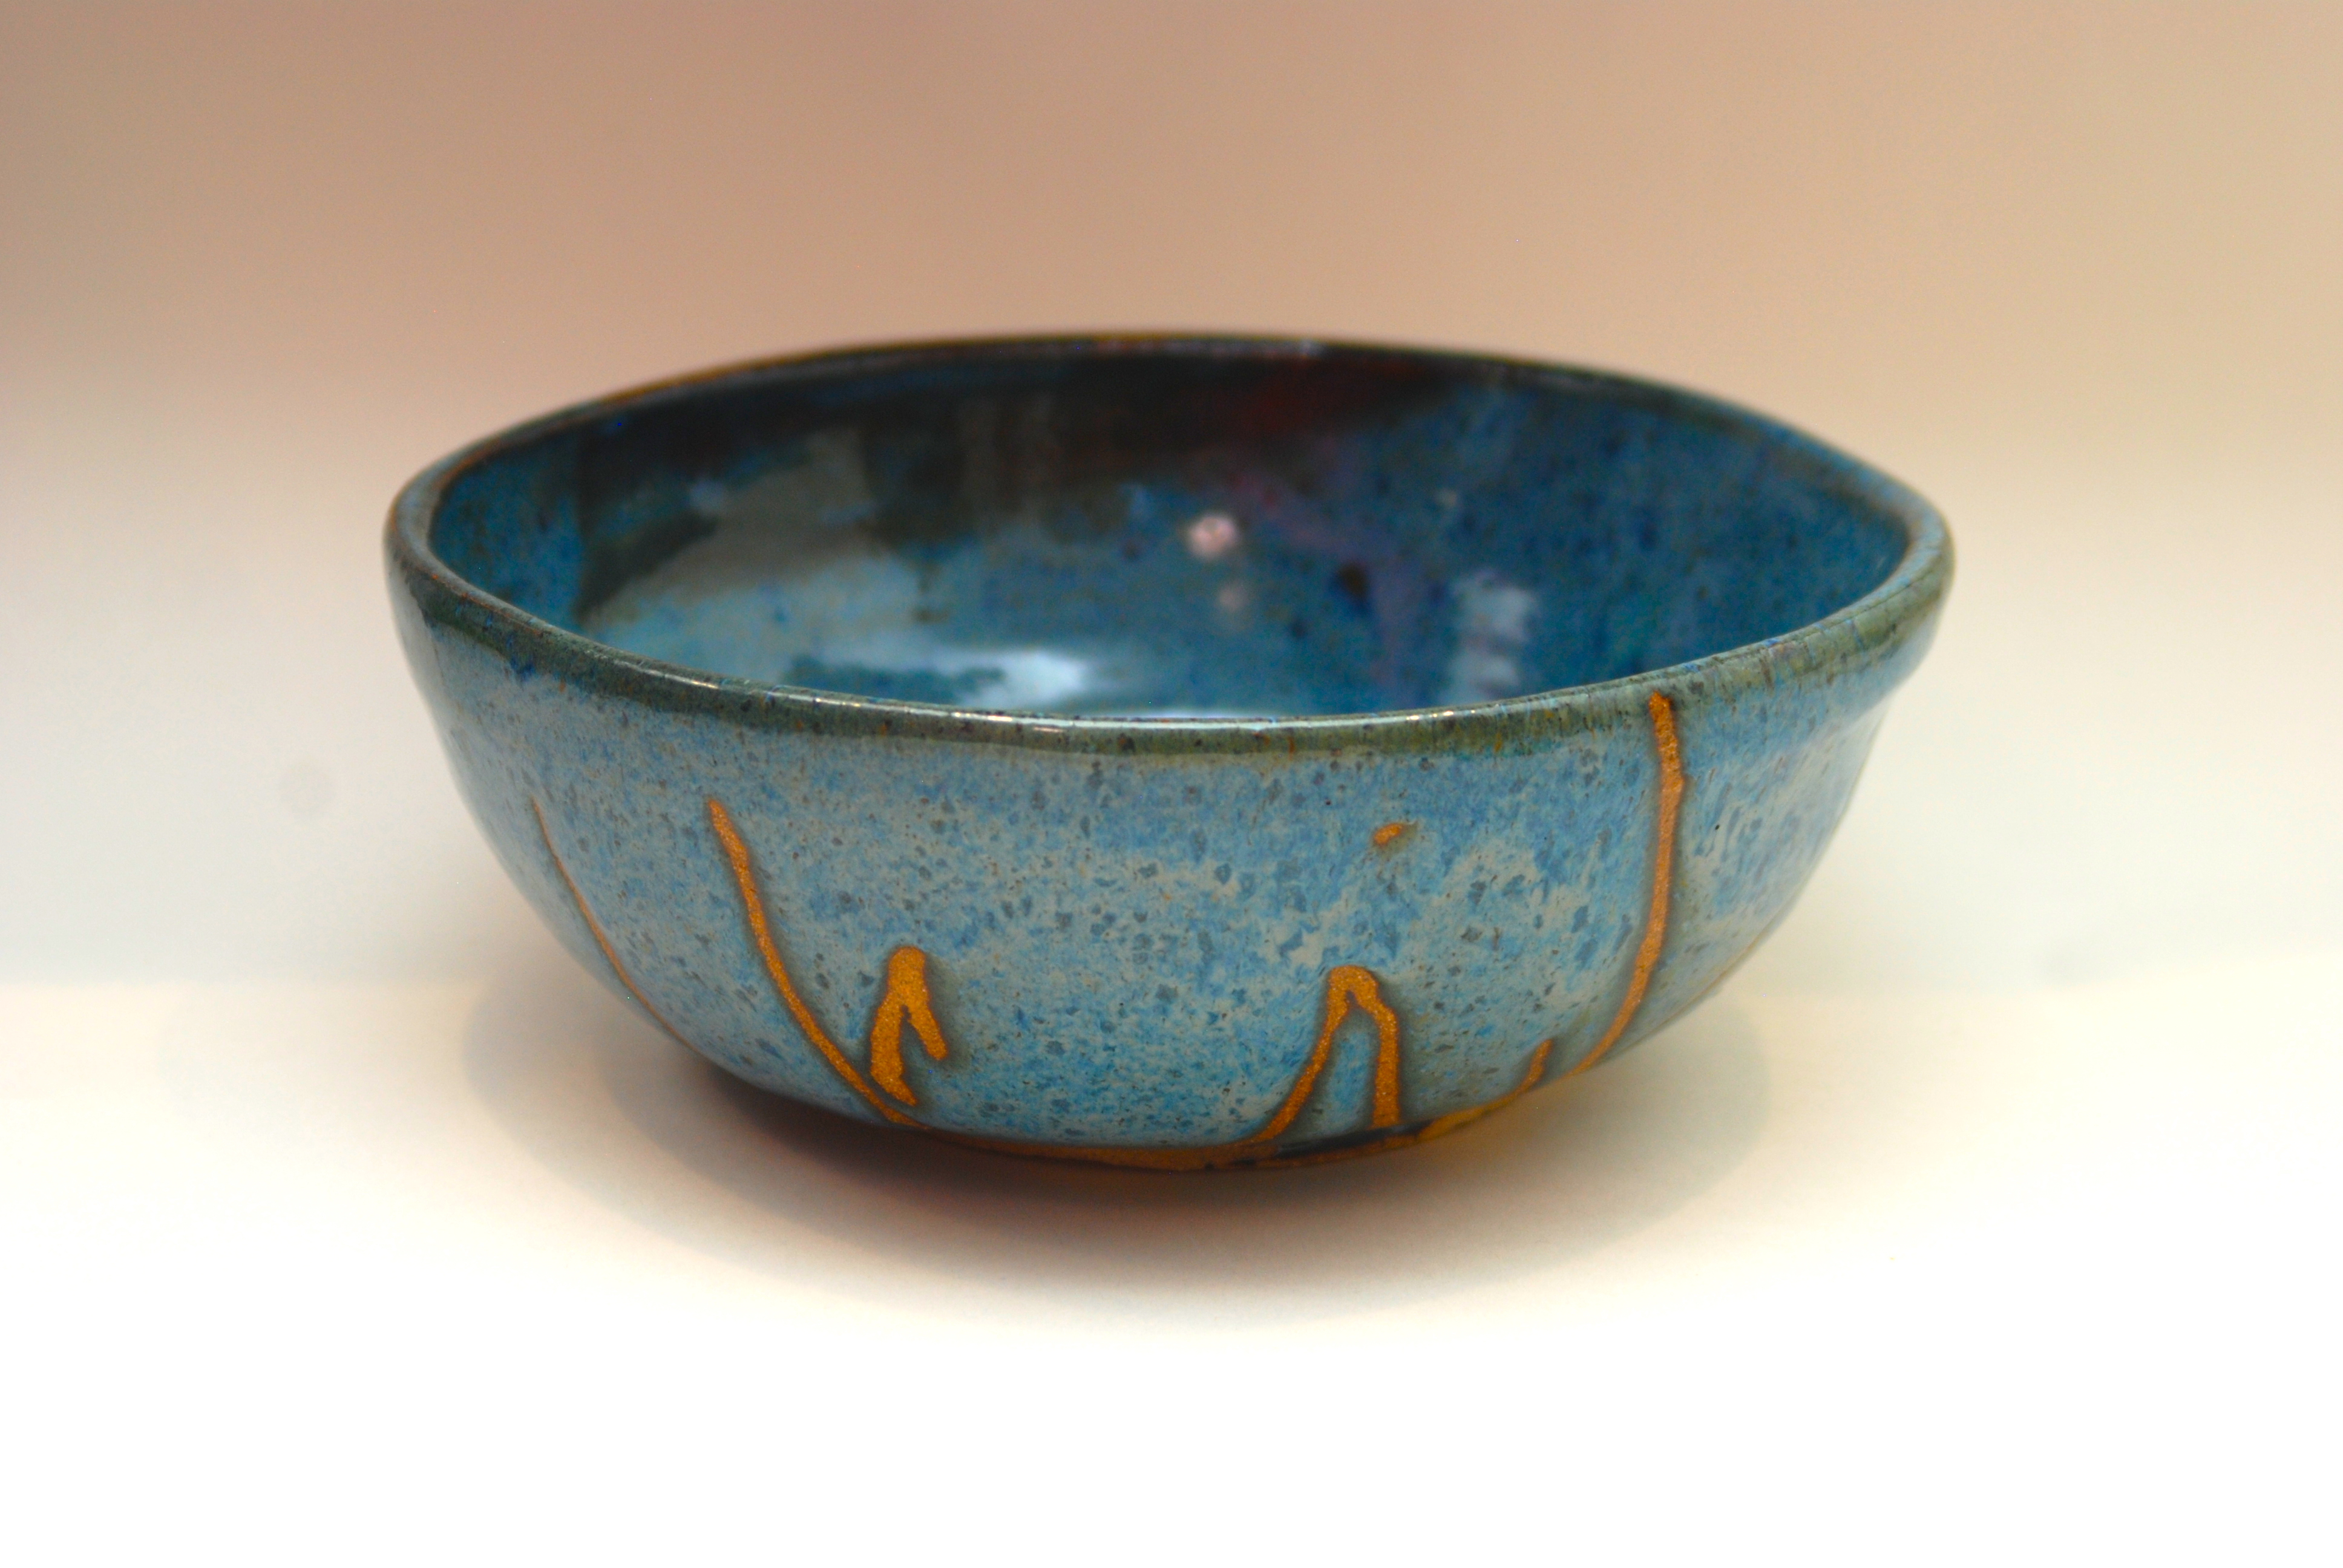 hand thrown pottery with blue glaze and wax designs